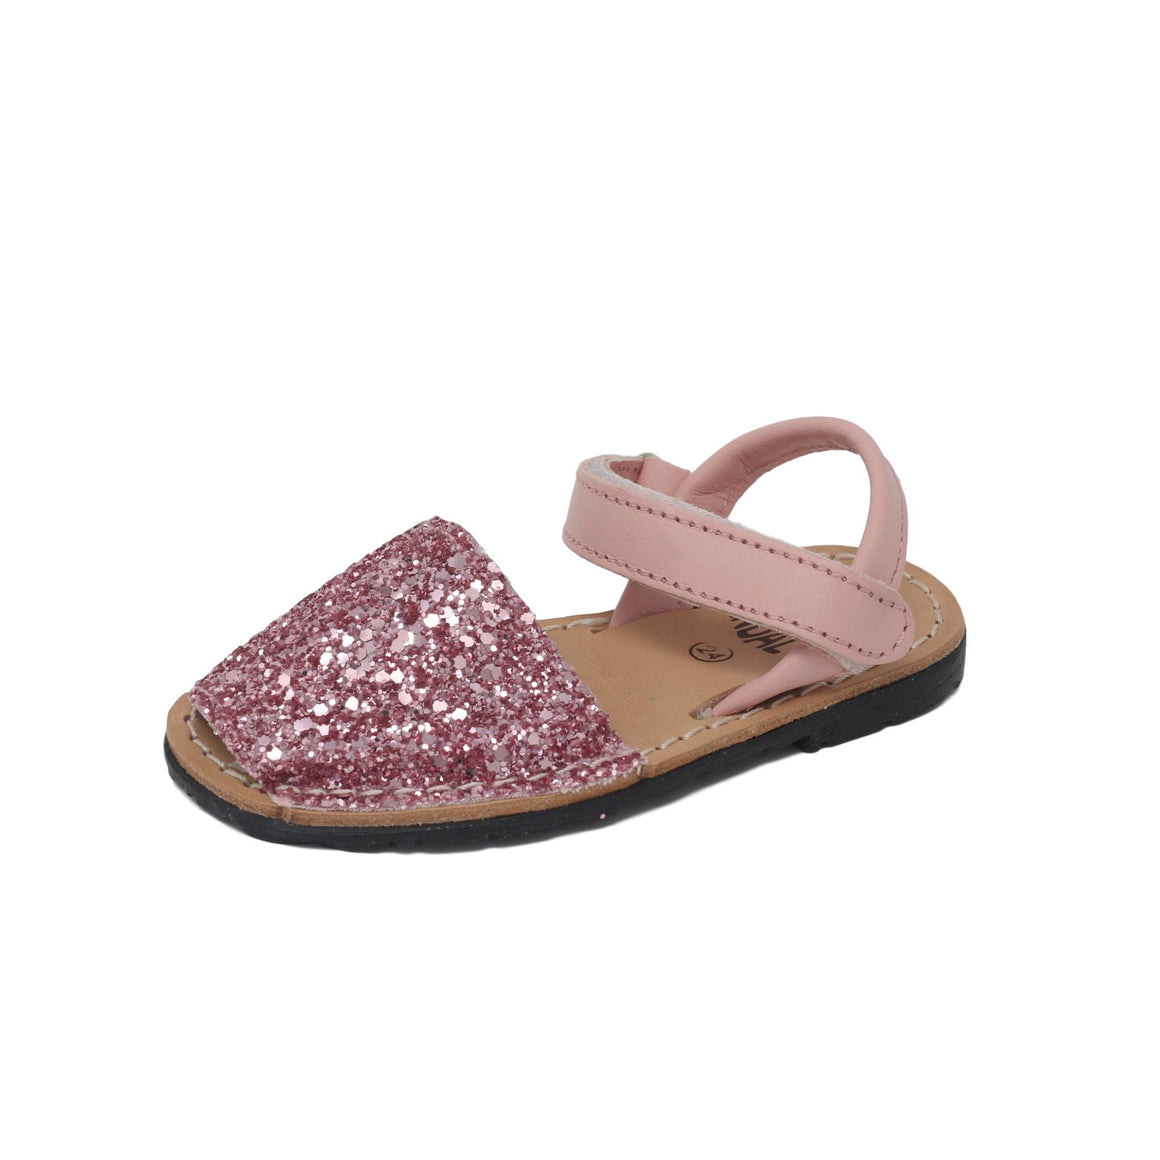 Baby glitter pink with velcro strap